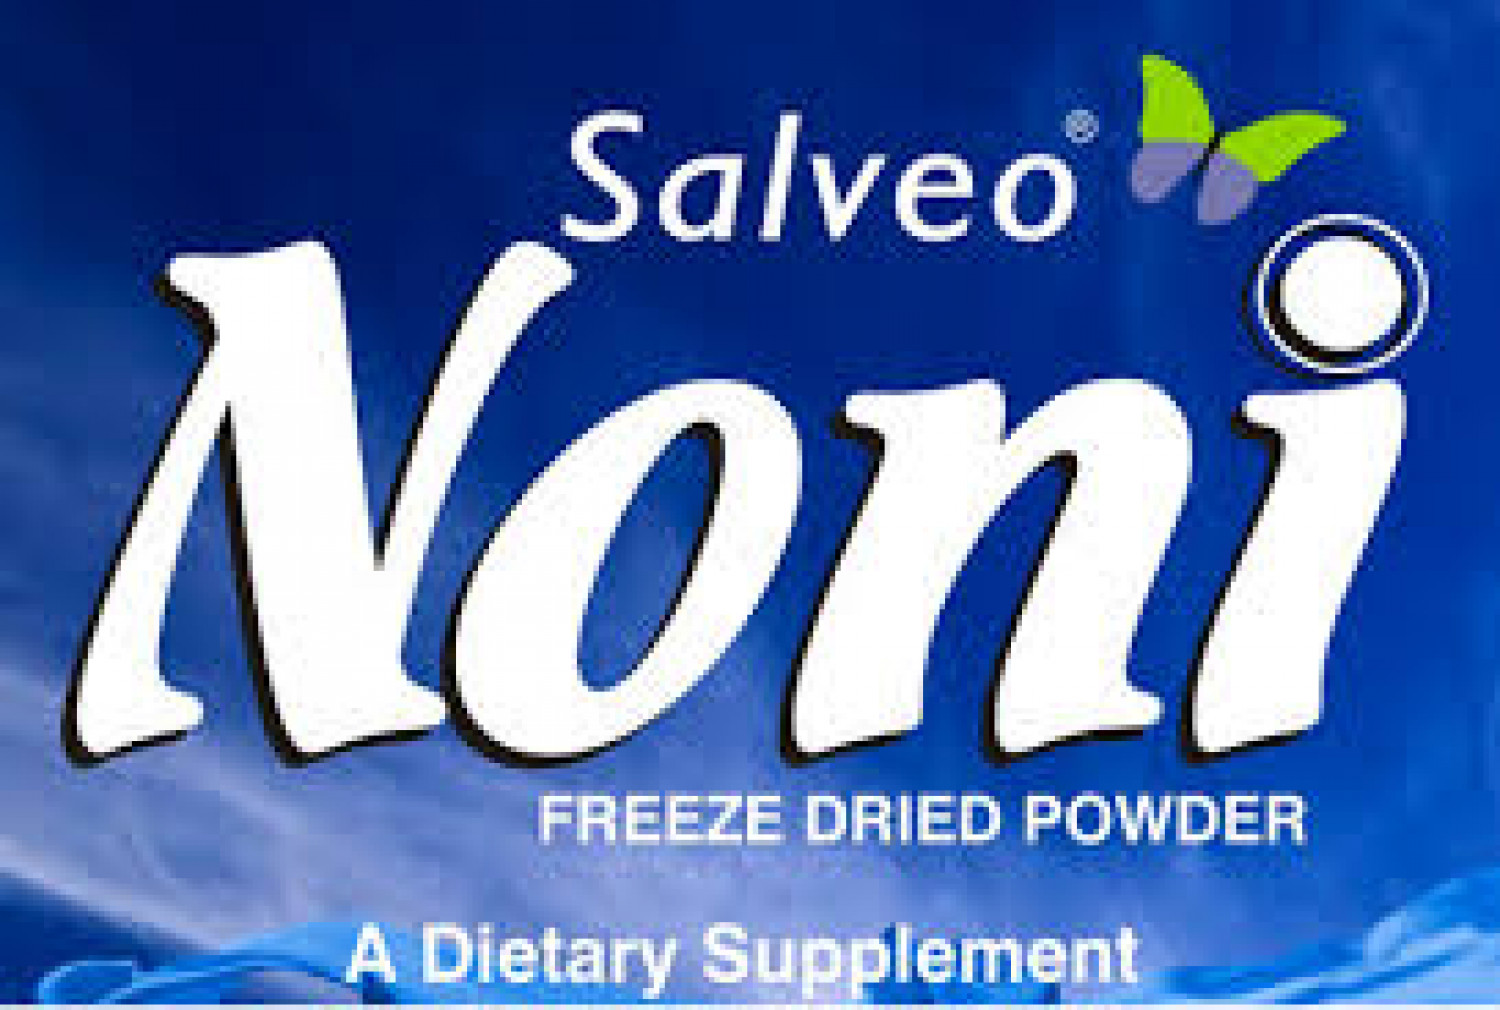 Freeze Dried NONI Powder Infographic